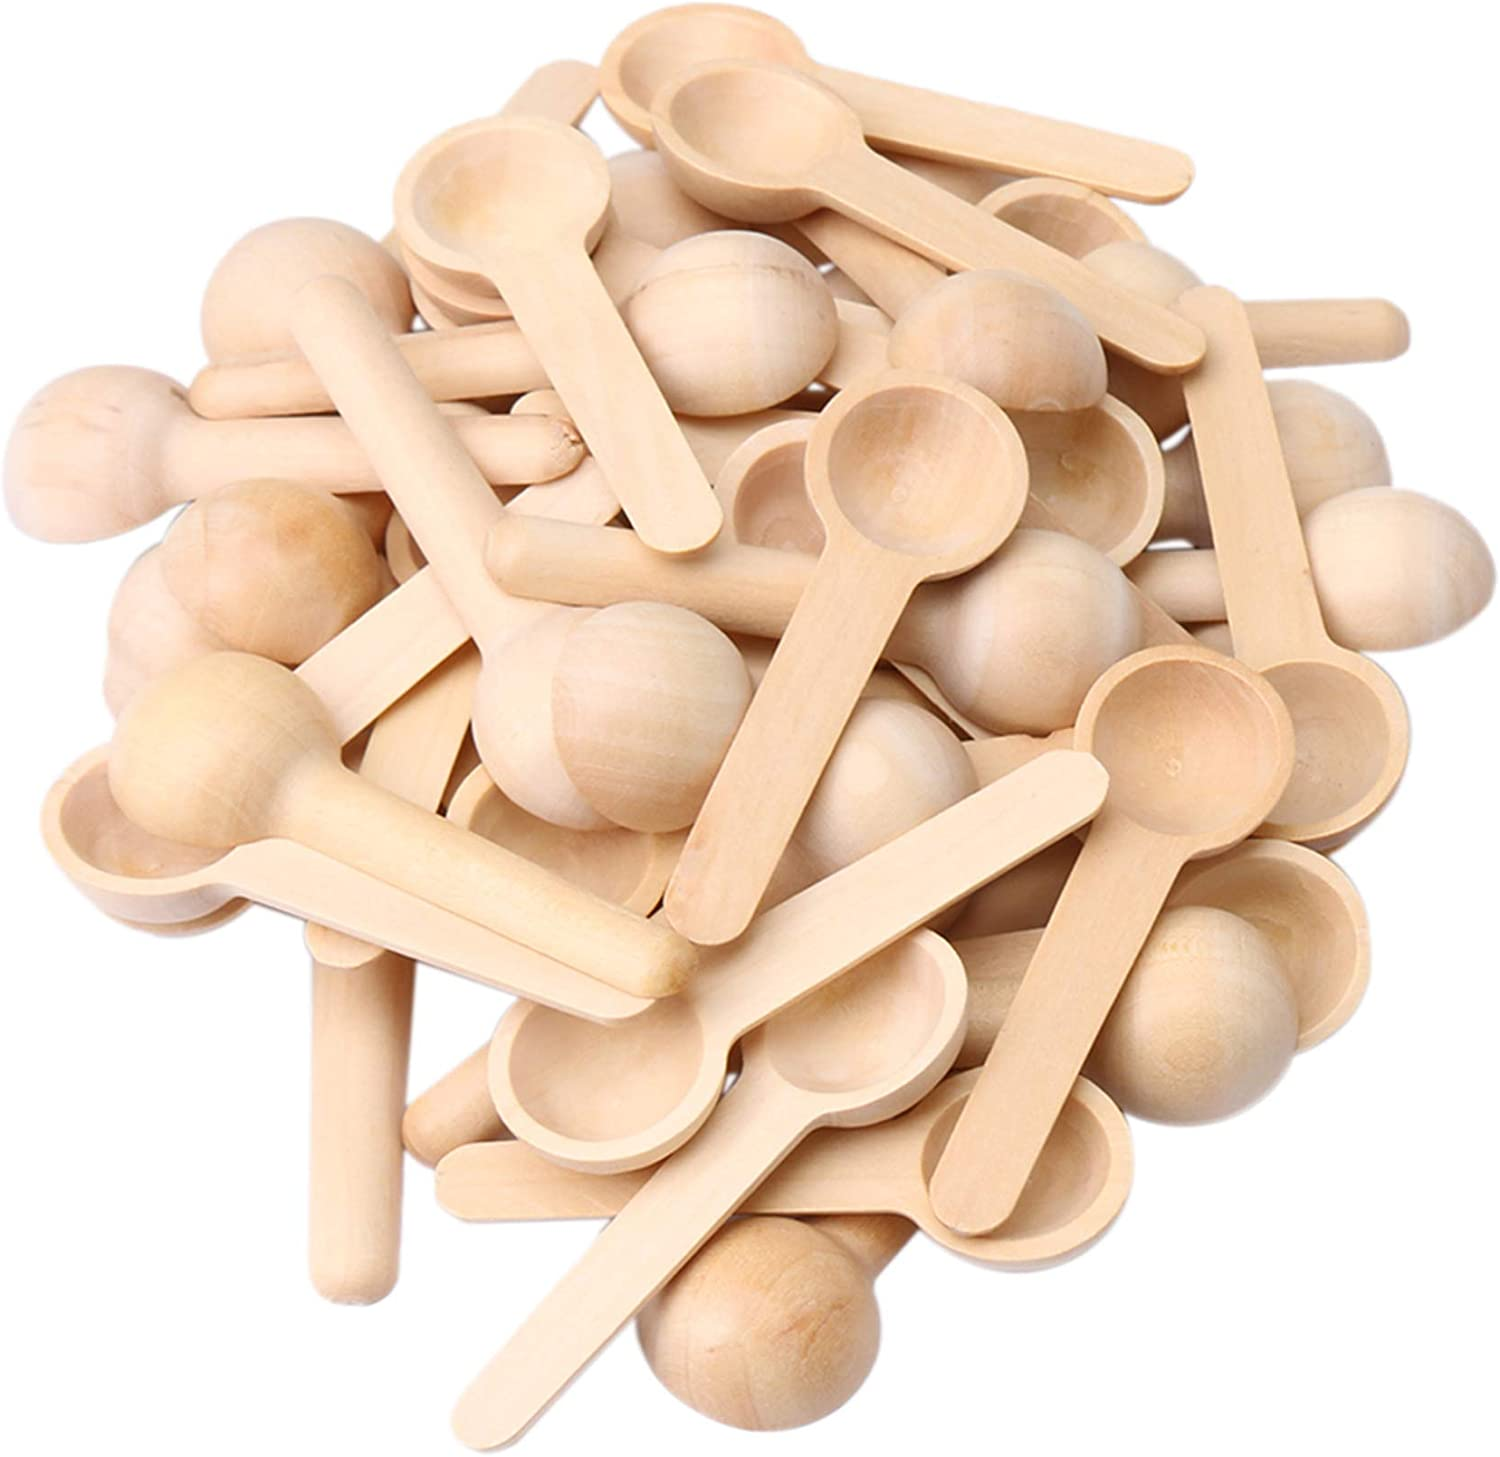 Details about  /Mini Natural Wooden Spoon Scoop Tea Honey Coffee Condiment Salt Sugar SpoonFLY